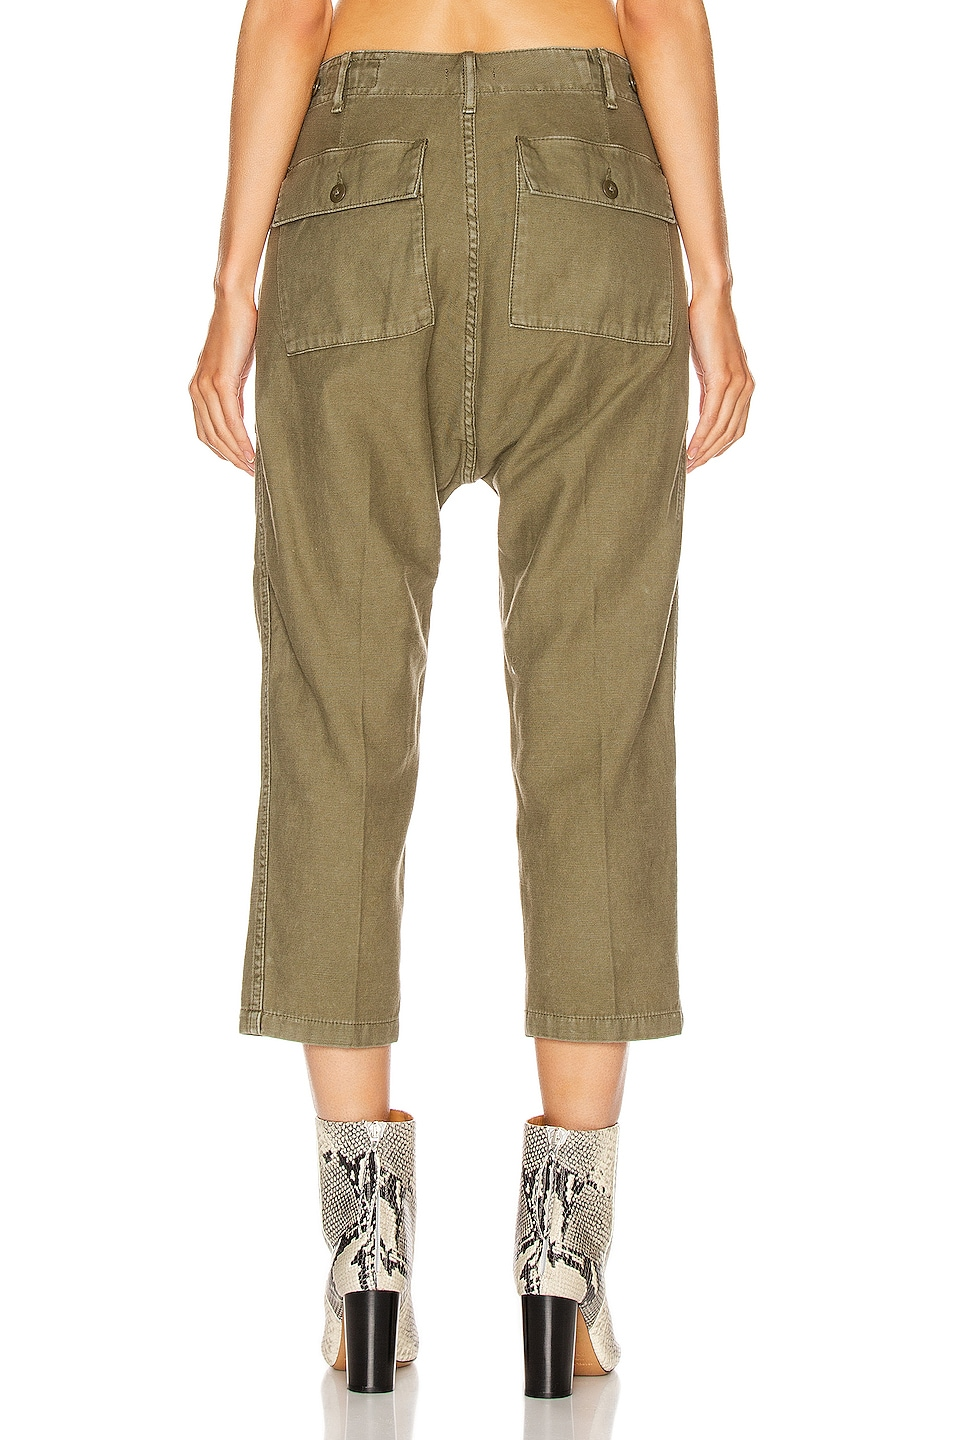 Image 3 of R13 Utility Drop Crotch Pant in Fatigue Olive